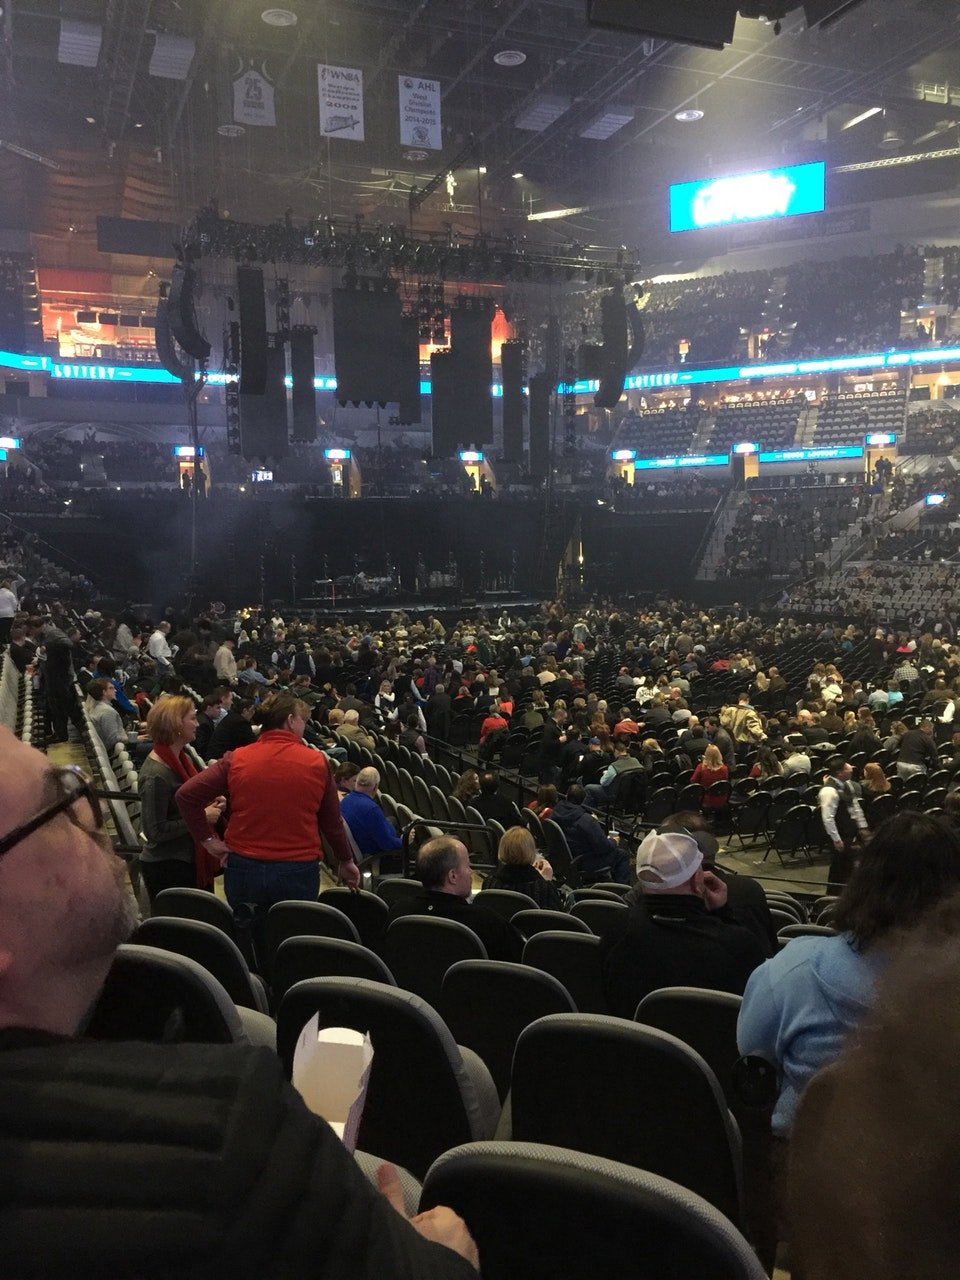 Concert Seat View for AT&T Center Section 104, Row 15